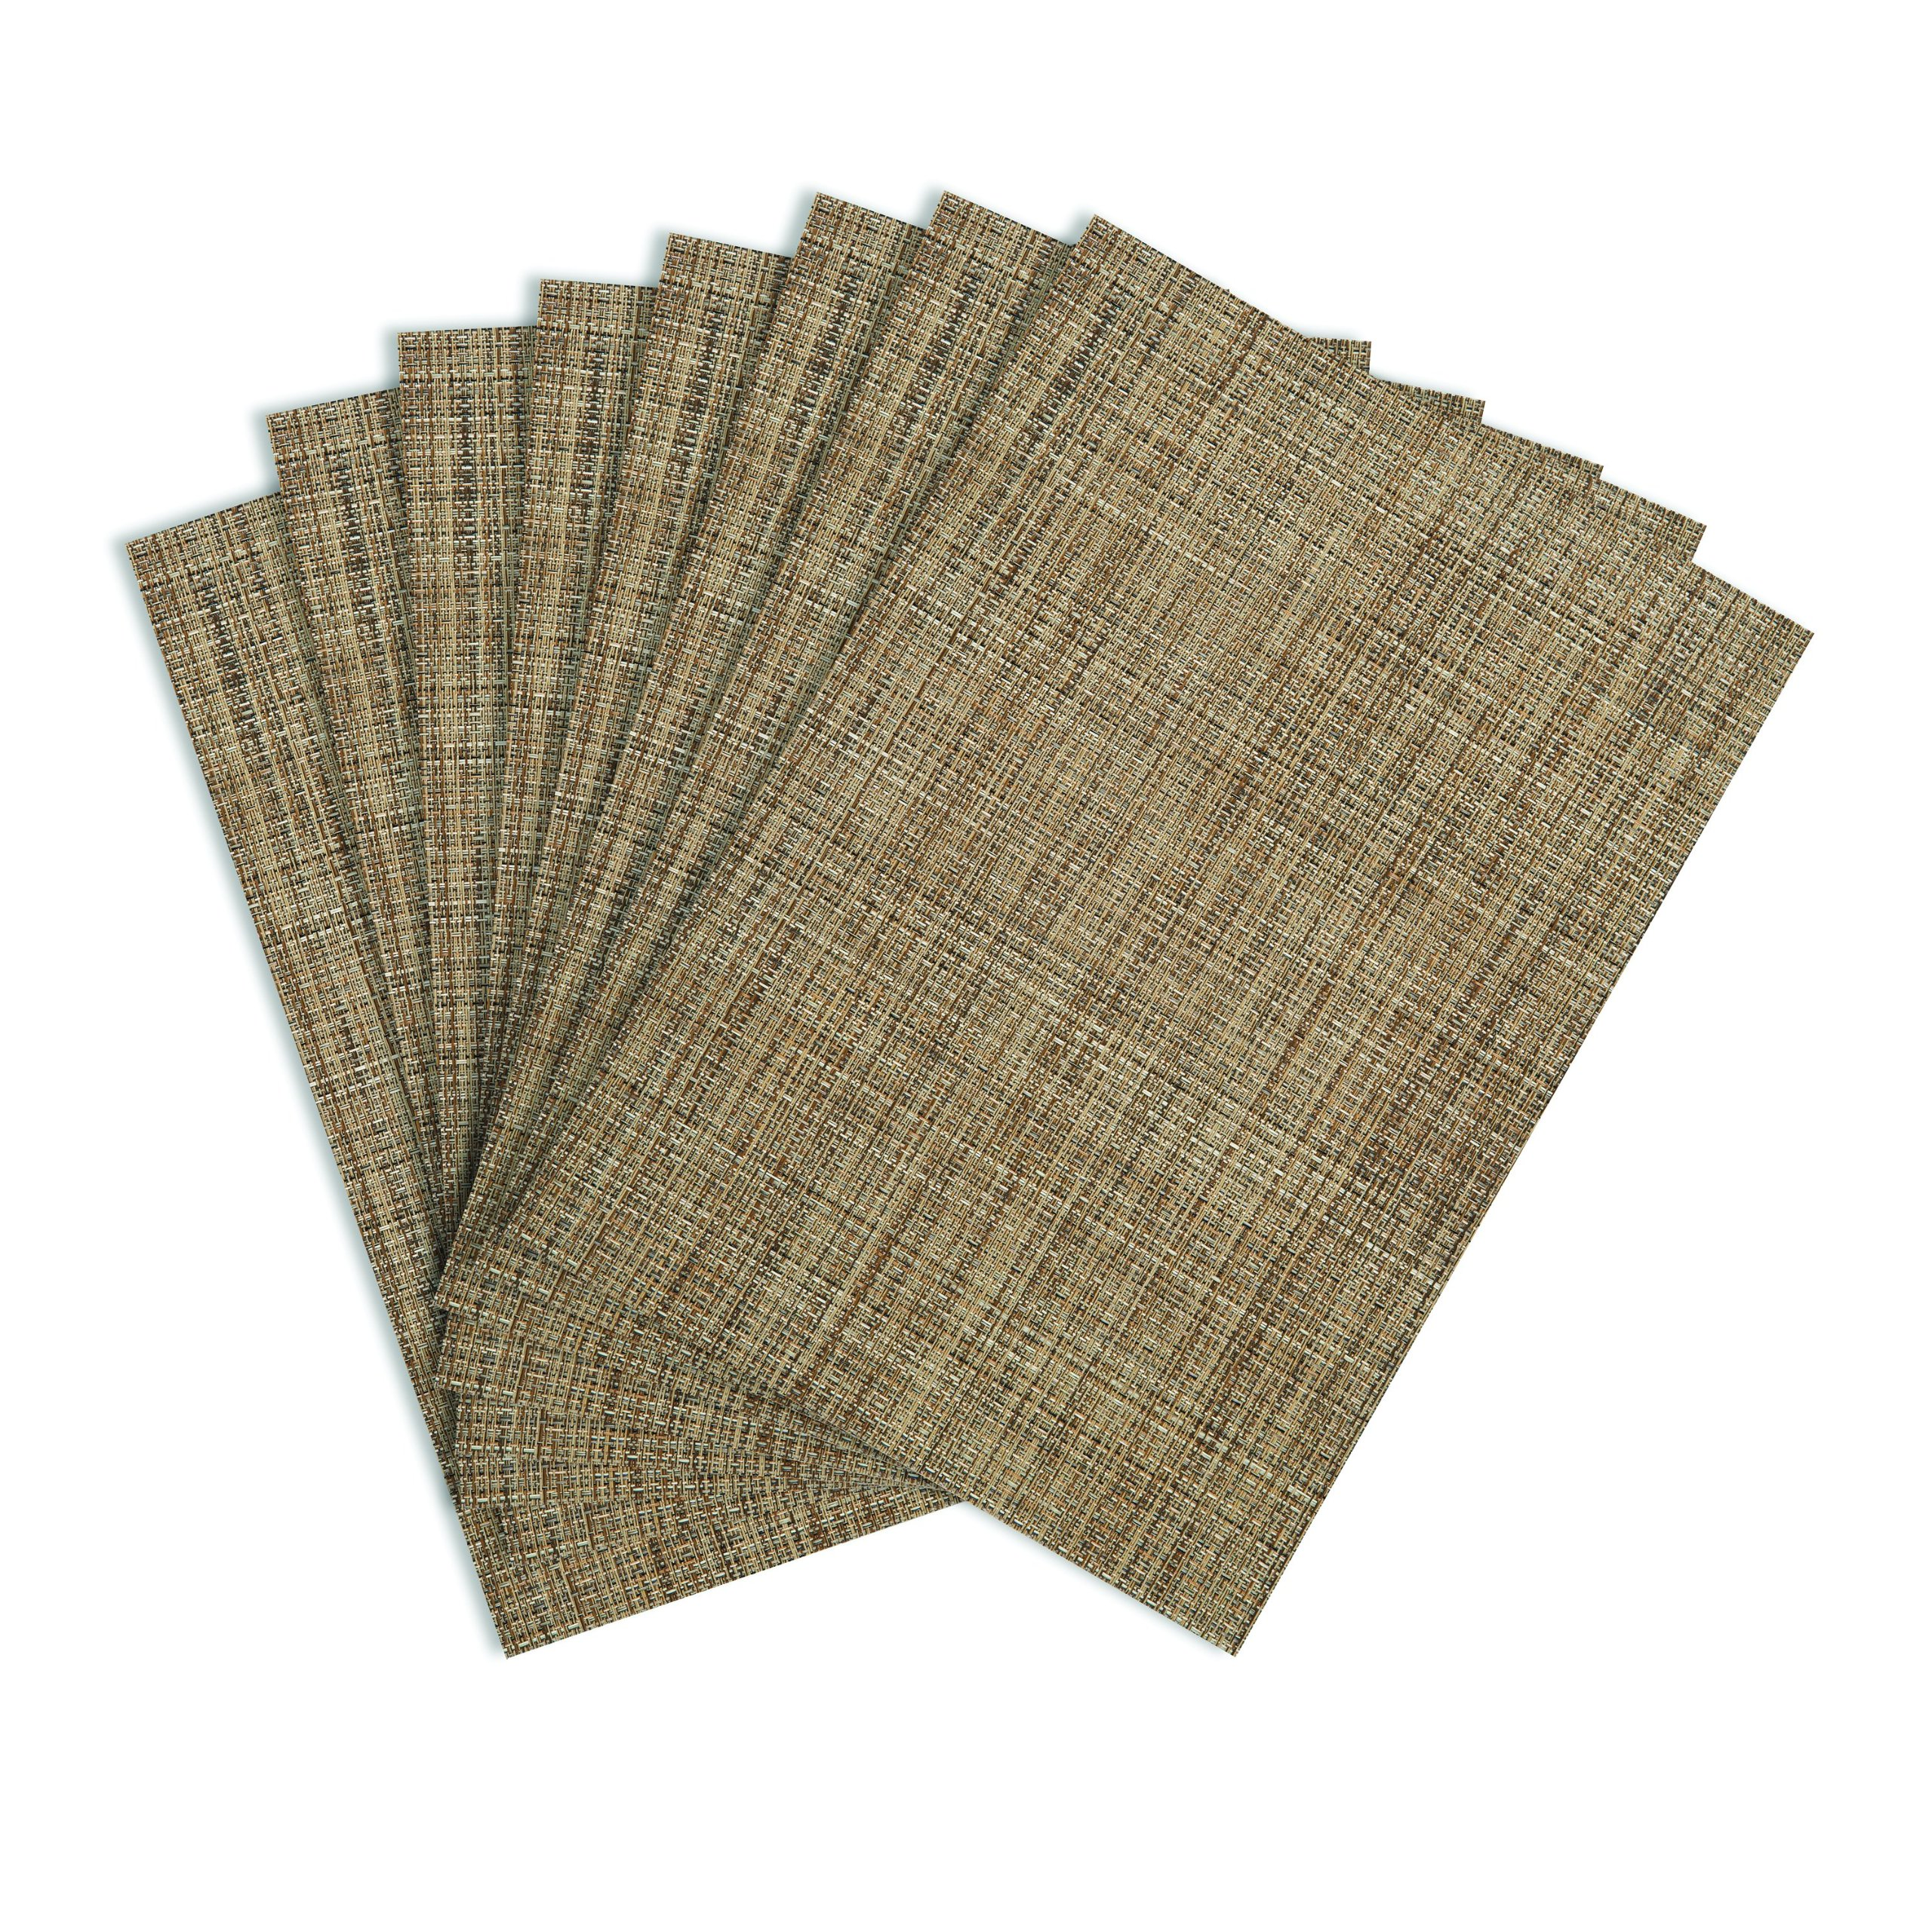 Table Protected Tweed Woven Vinyl Placemats Durable Home